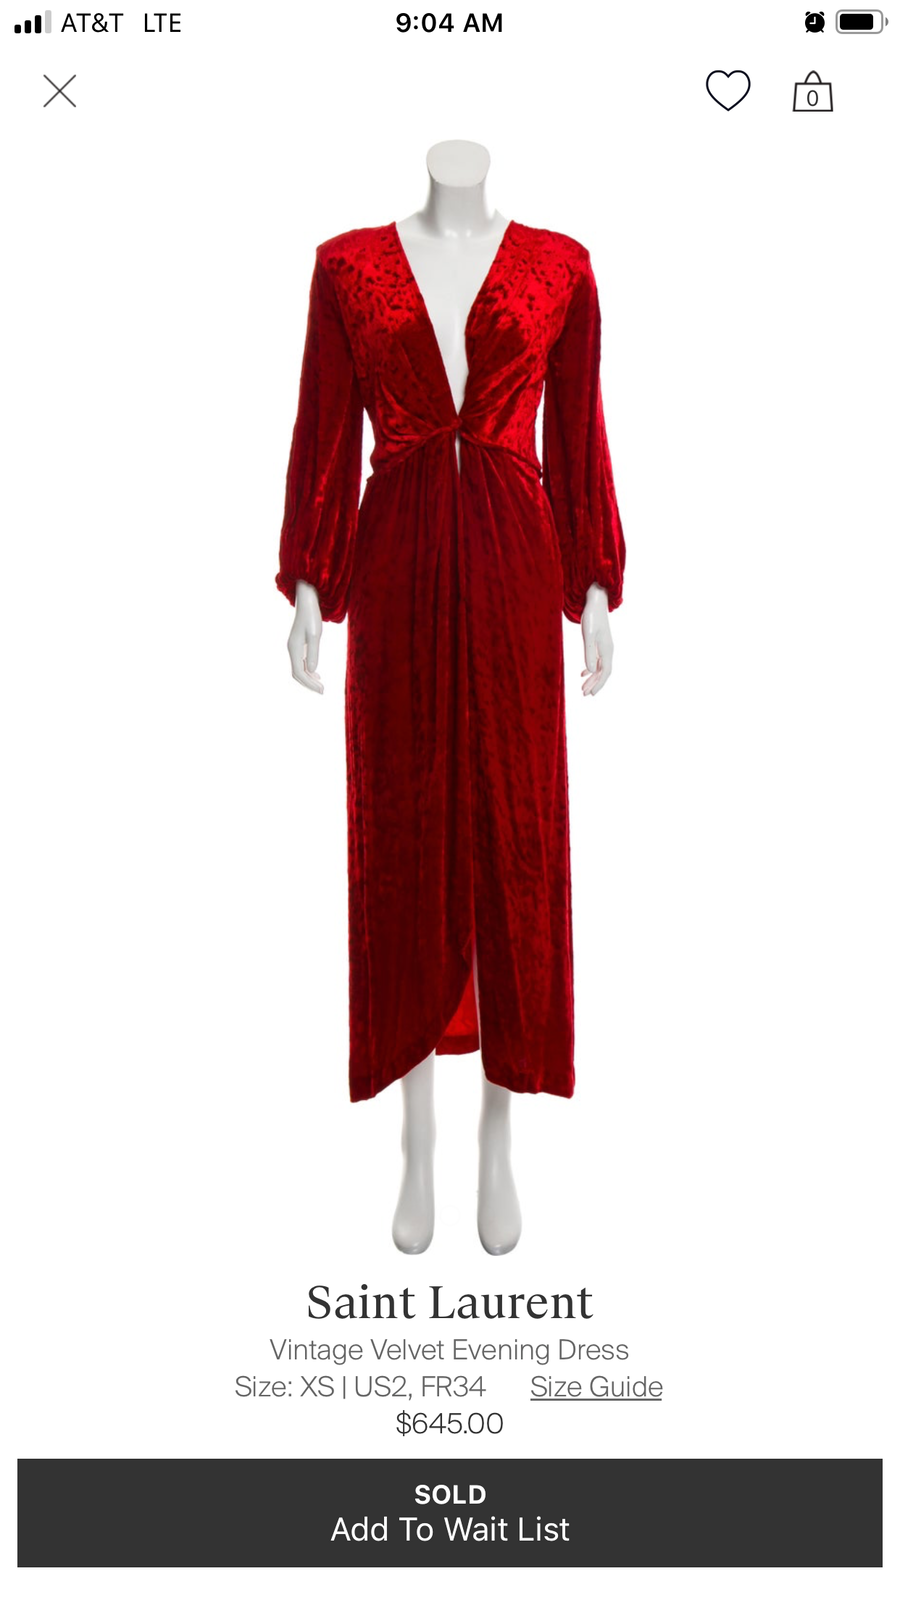 YVES SAINT LAURENT VELVET DRESS